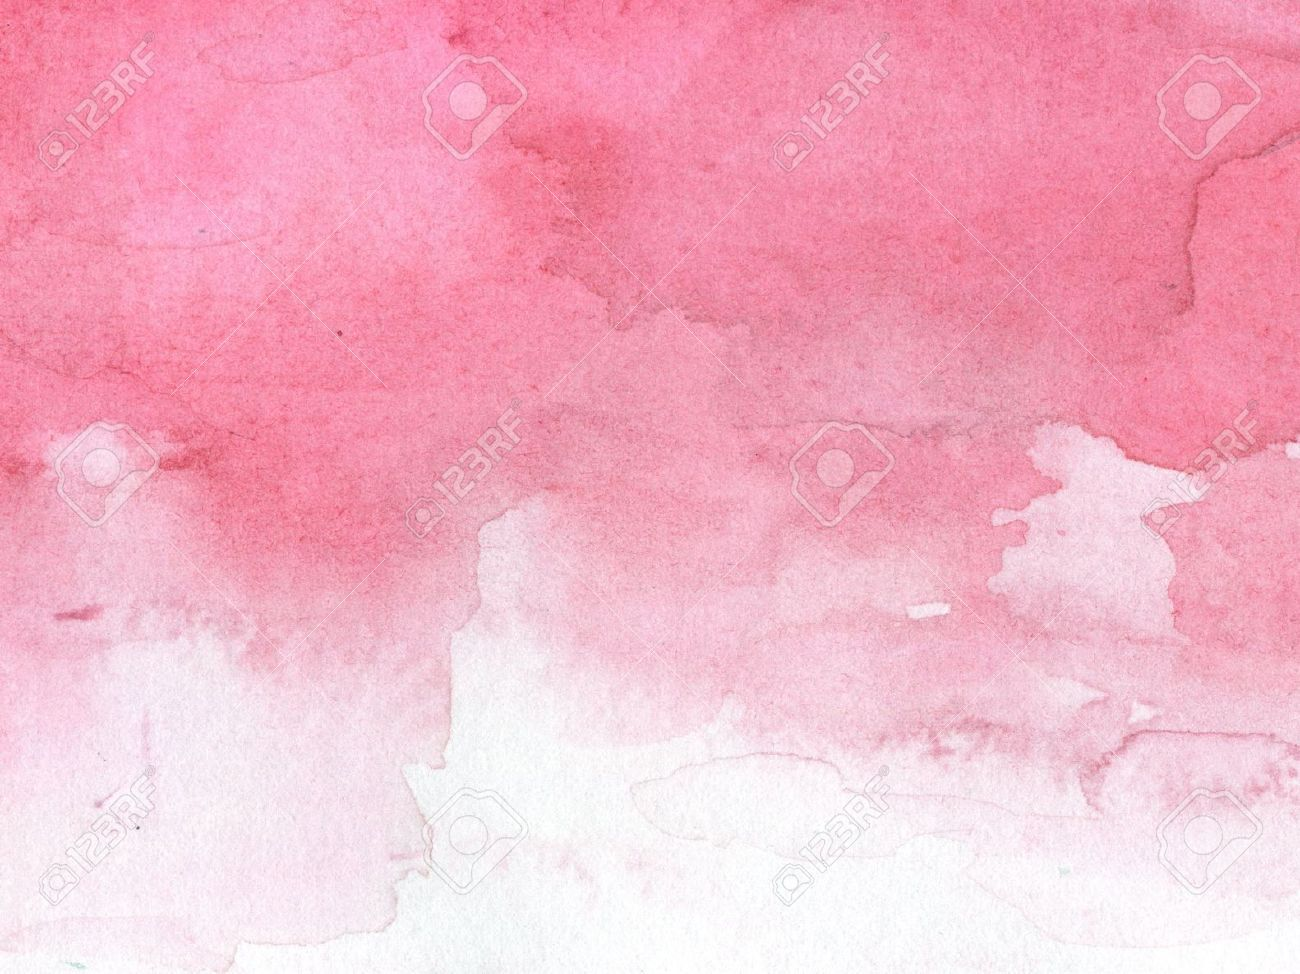 Stock Photo Watercolor Background Pink Watercolor Watercolor